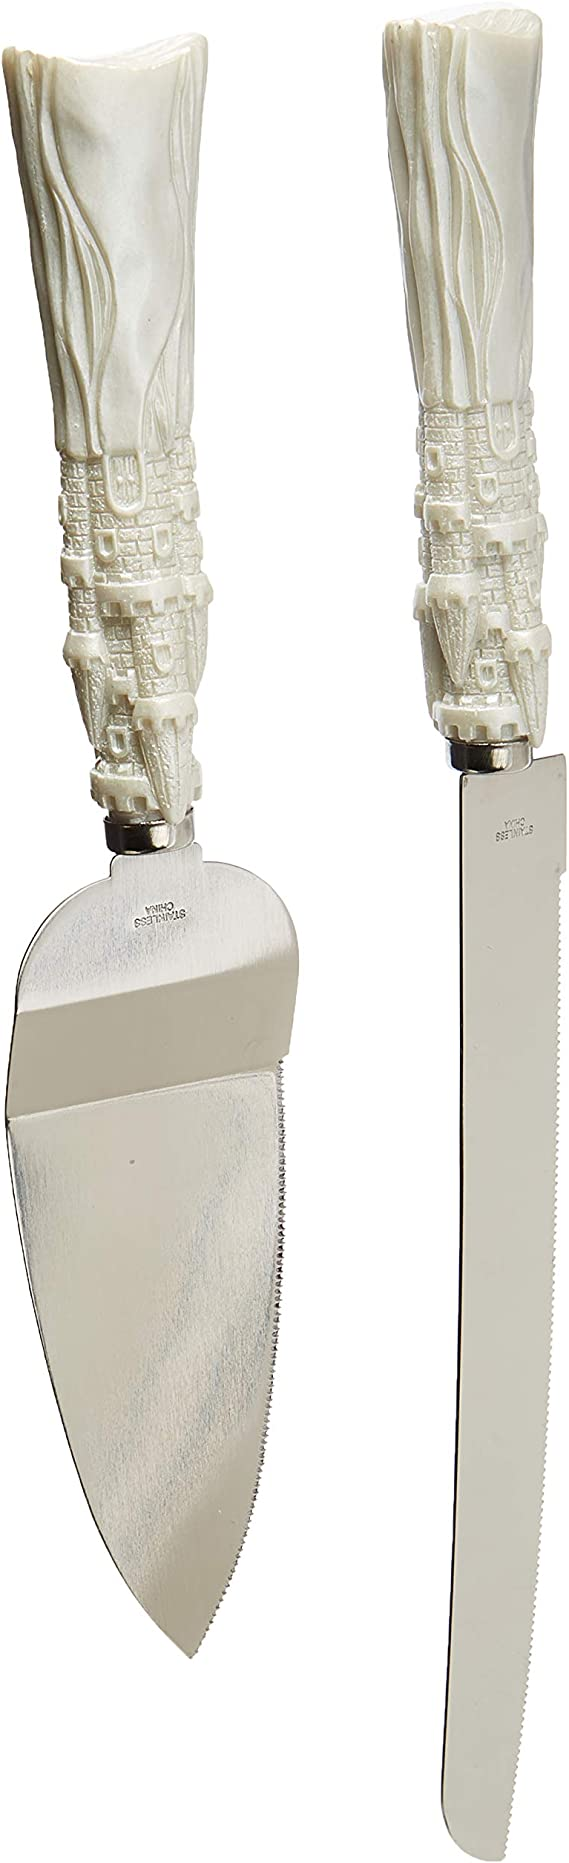 FASHIONCRAFT 2476 Fairytale design/Cinderella themed stainless-steel Cake cutter and knife set